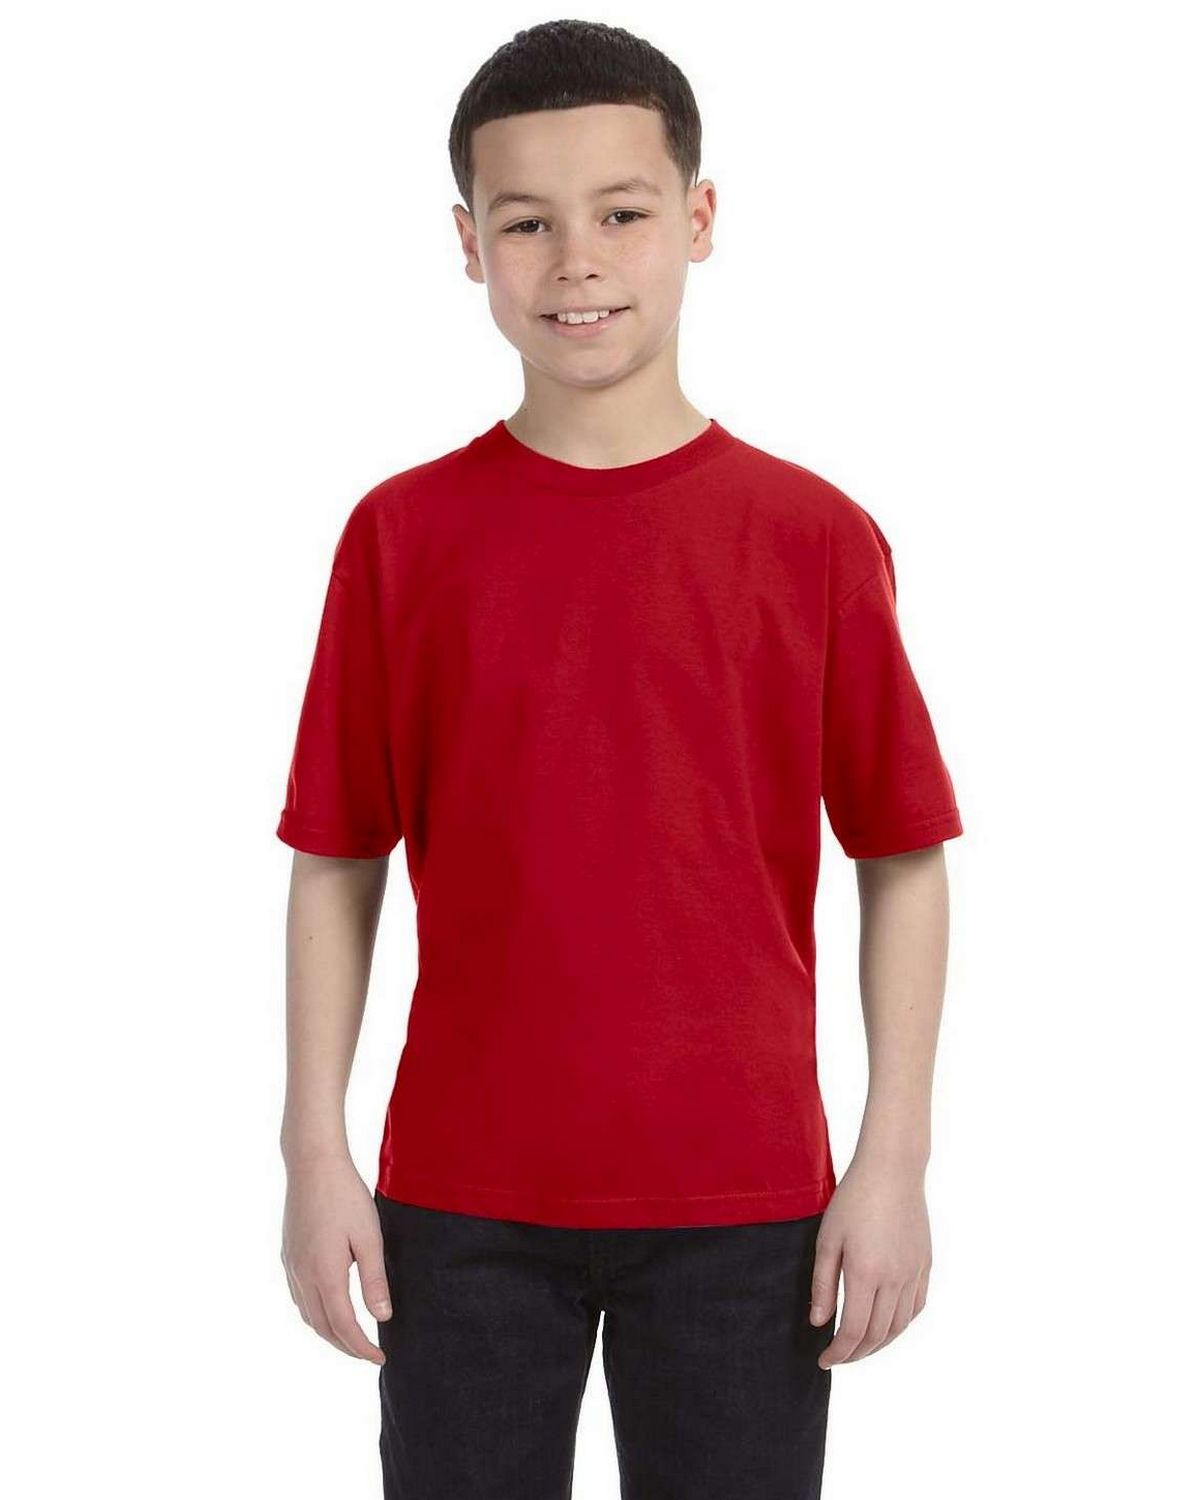 Anvil 990B Ringspun Cotton Fashion Fit T-Shirt - Red - S 990B